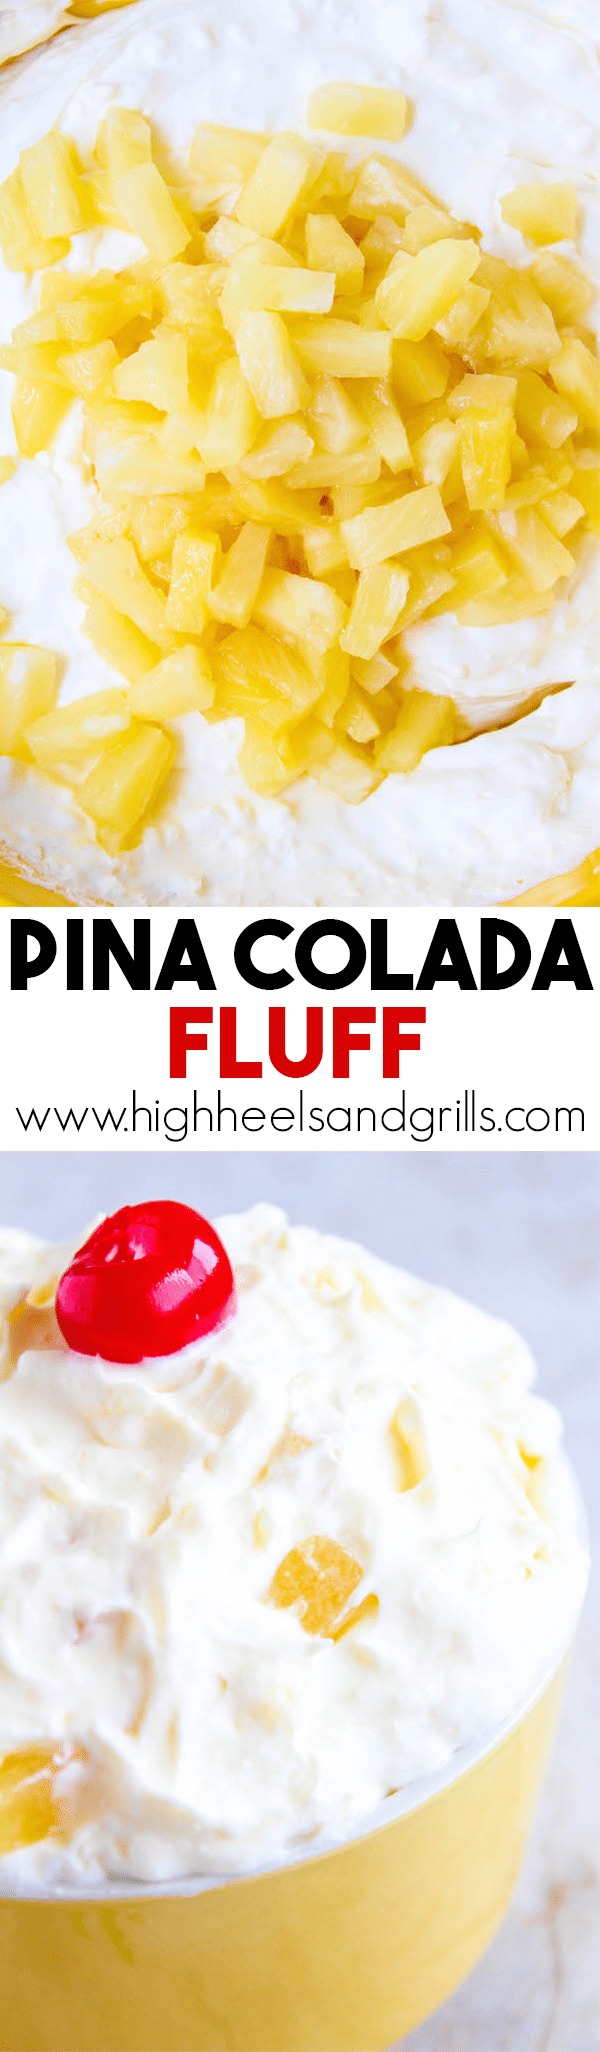 Pina Colada Fluff - This quickly became a fan favorite in our house for parties and get togethers. It tastes like a legit pina colada!